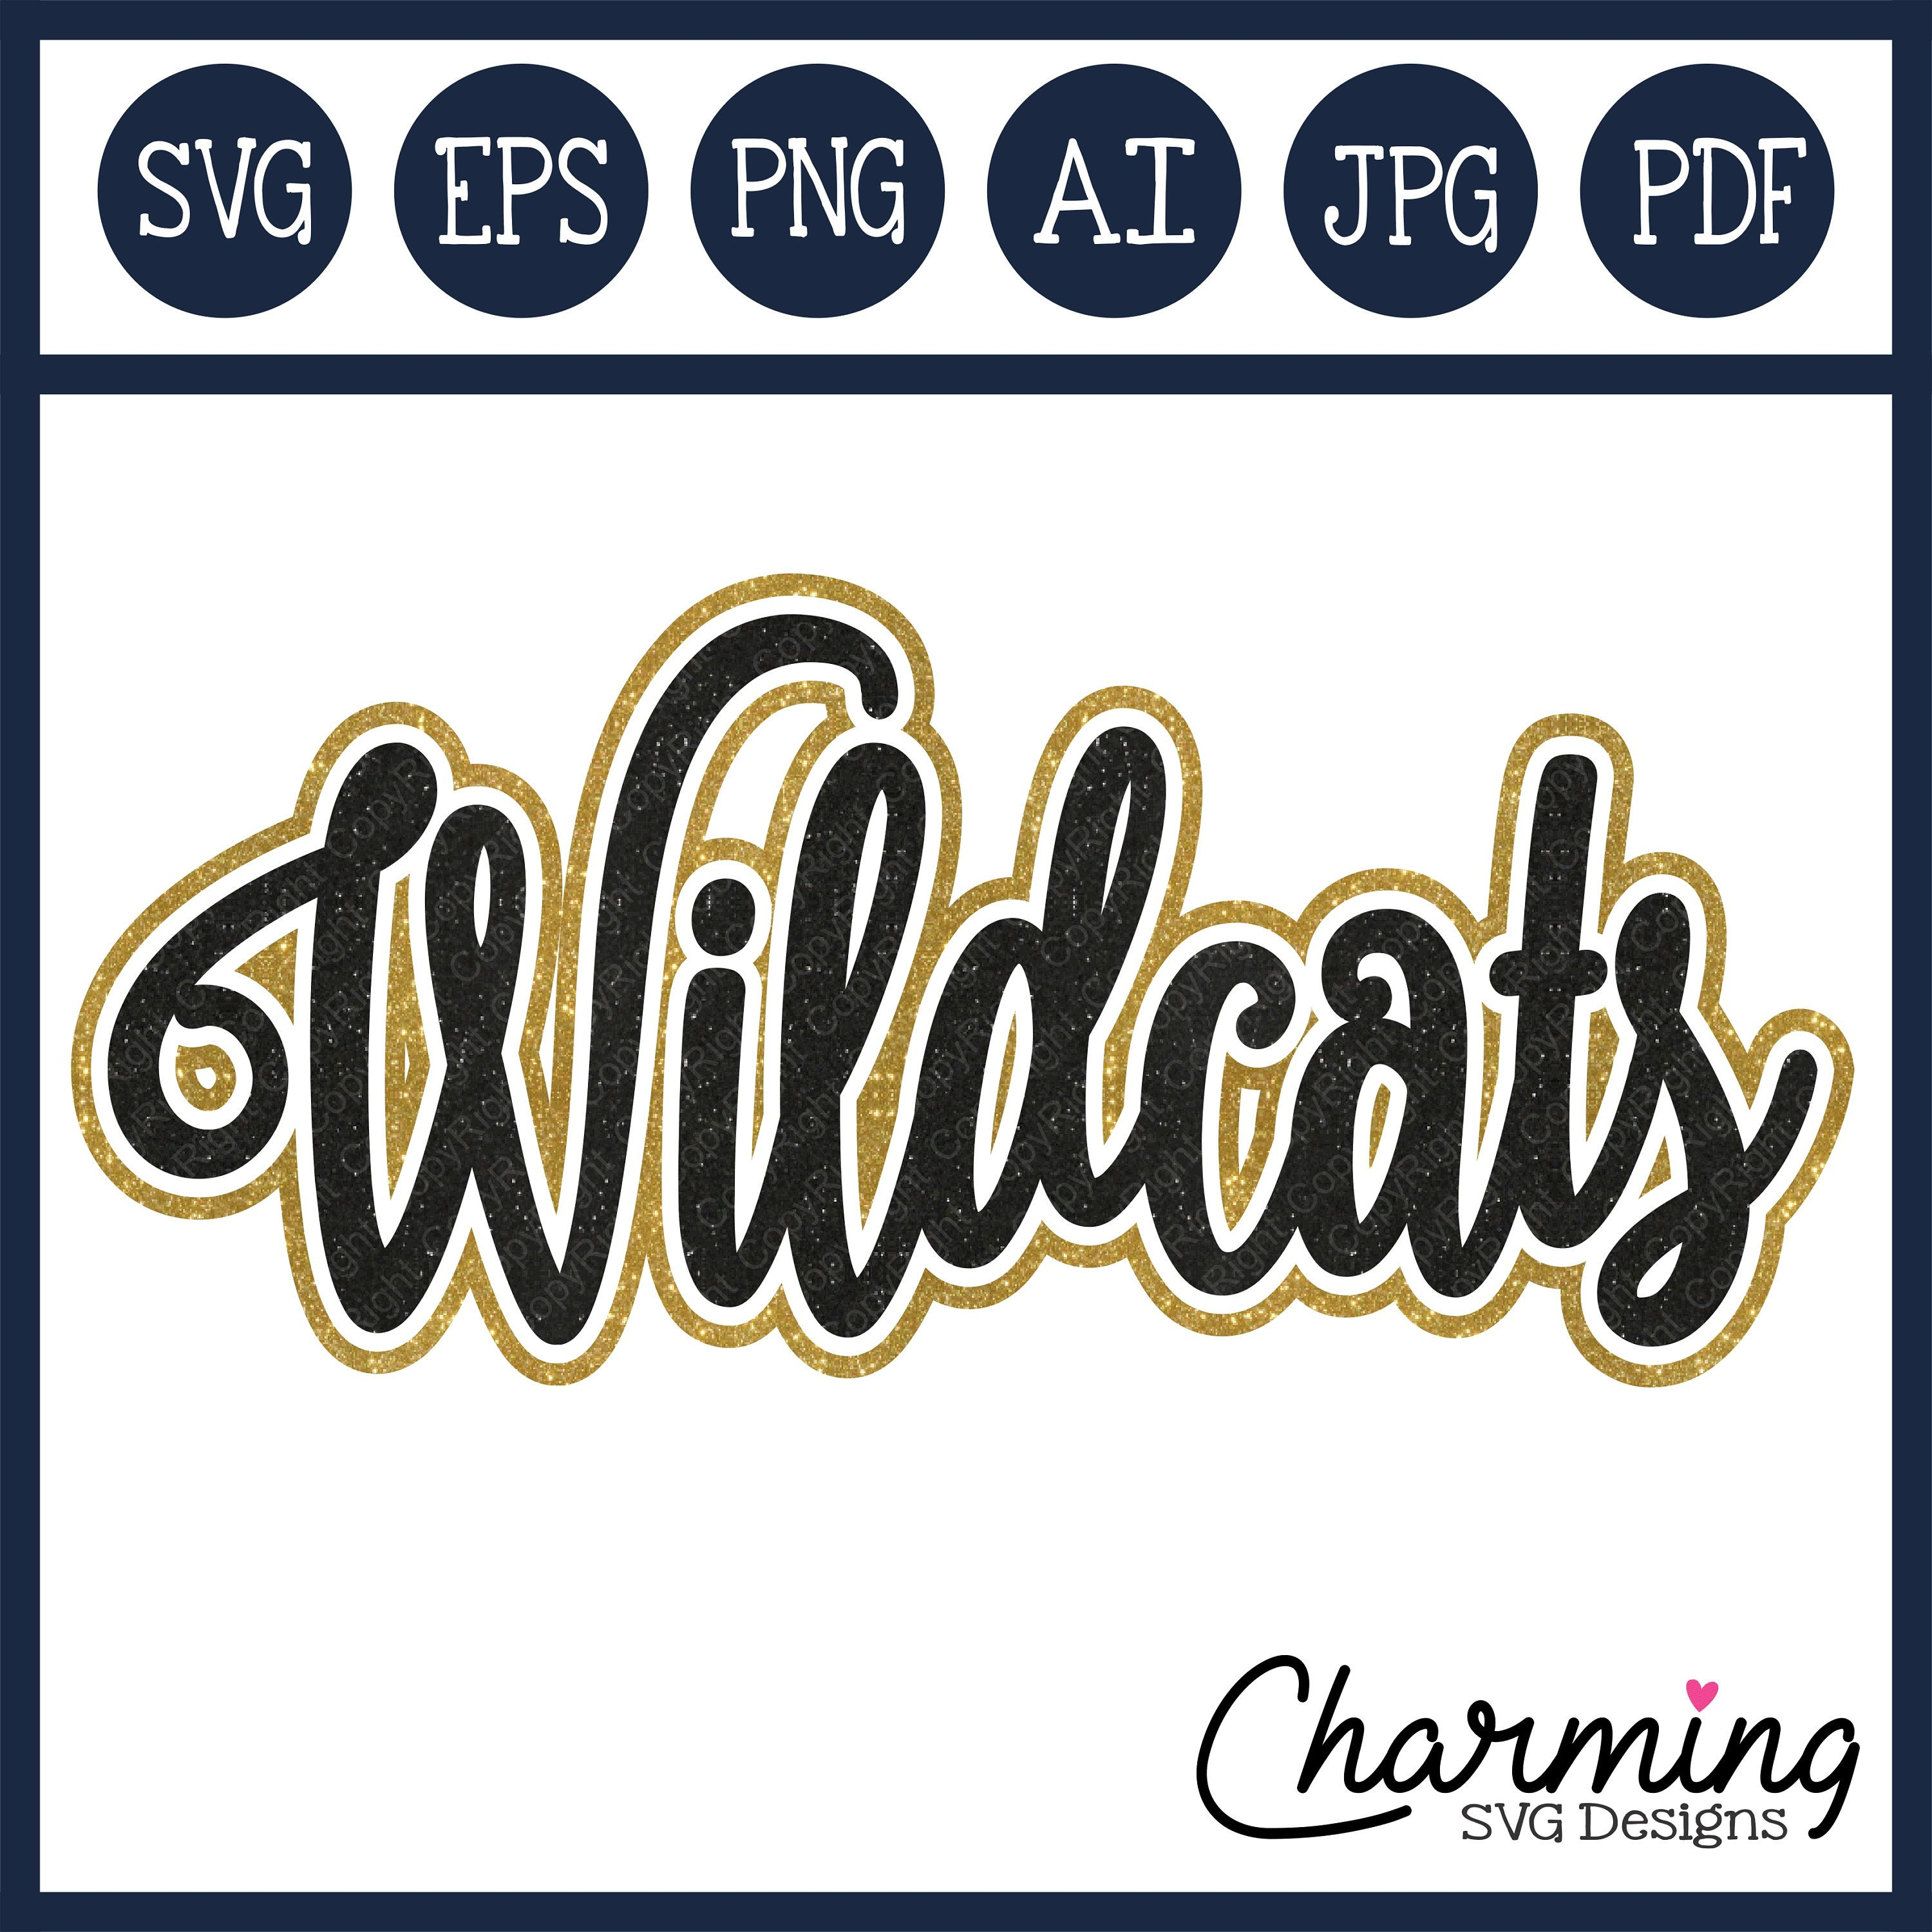 4a3652b3 SVG, Wildcats SVG, Wildcats Cut File, Wildcats Vector Designs, Wildcats  eps, silhouette cameo cut files, cricut cut files by CharmingSVGDesigns on  Etsy